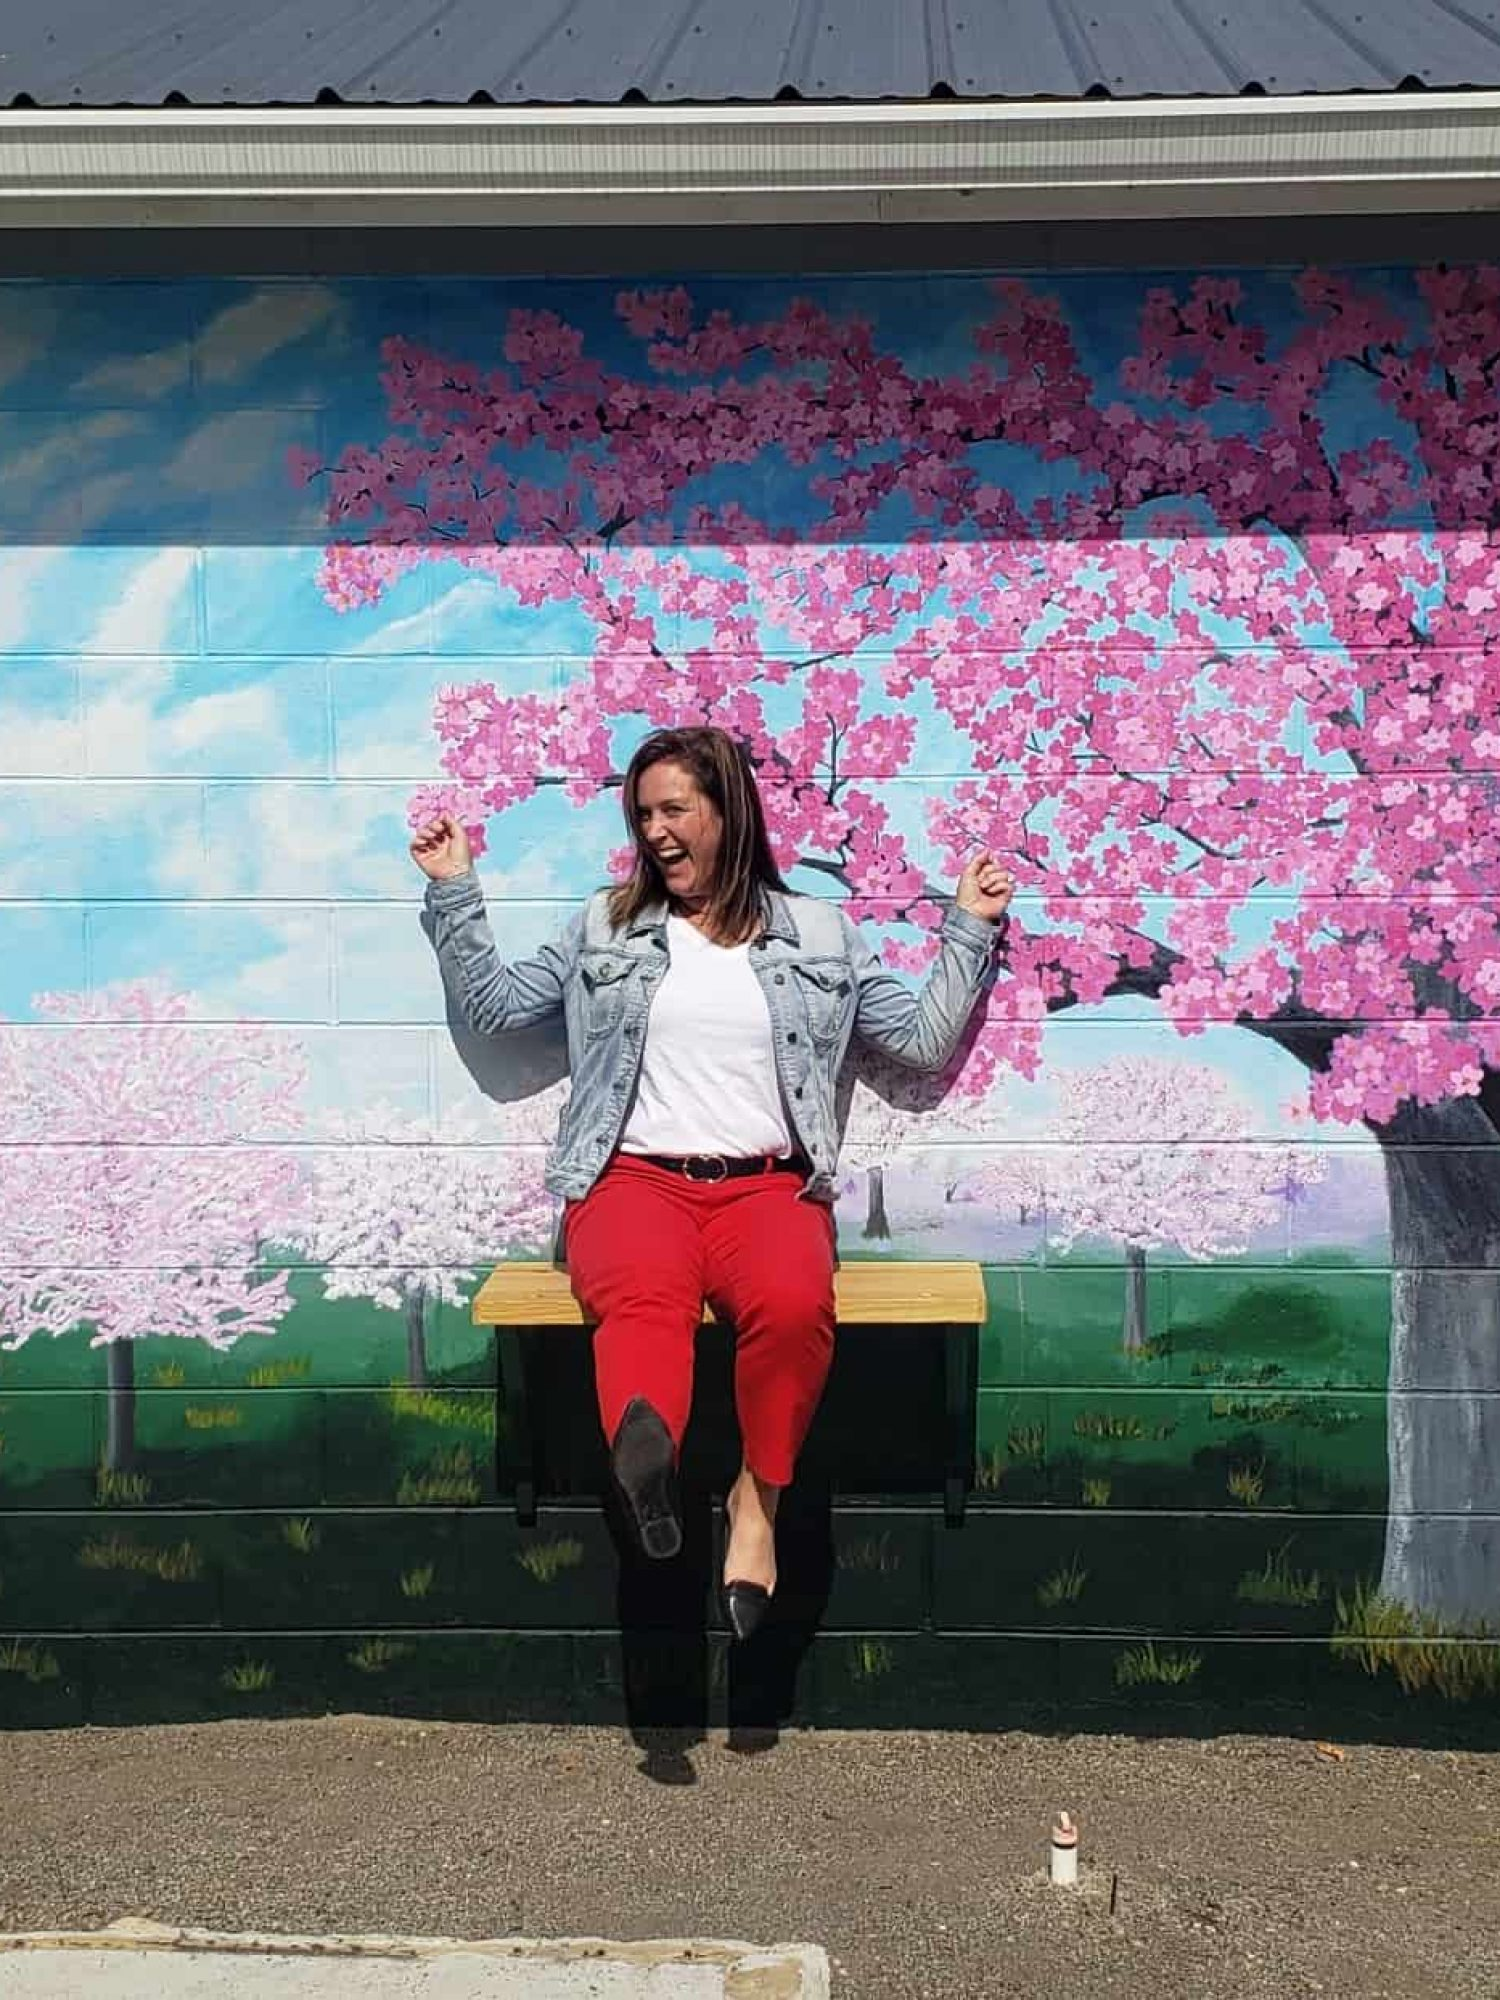 My-Community-My-Vision-Mural-Amy-Streator-on-Swing